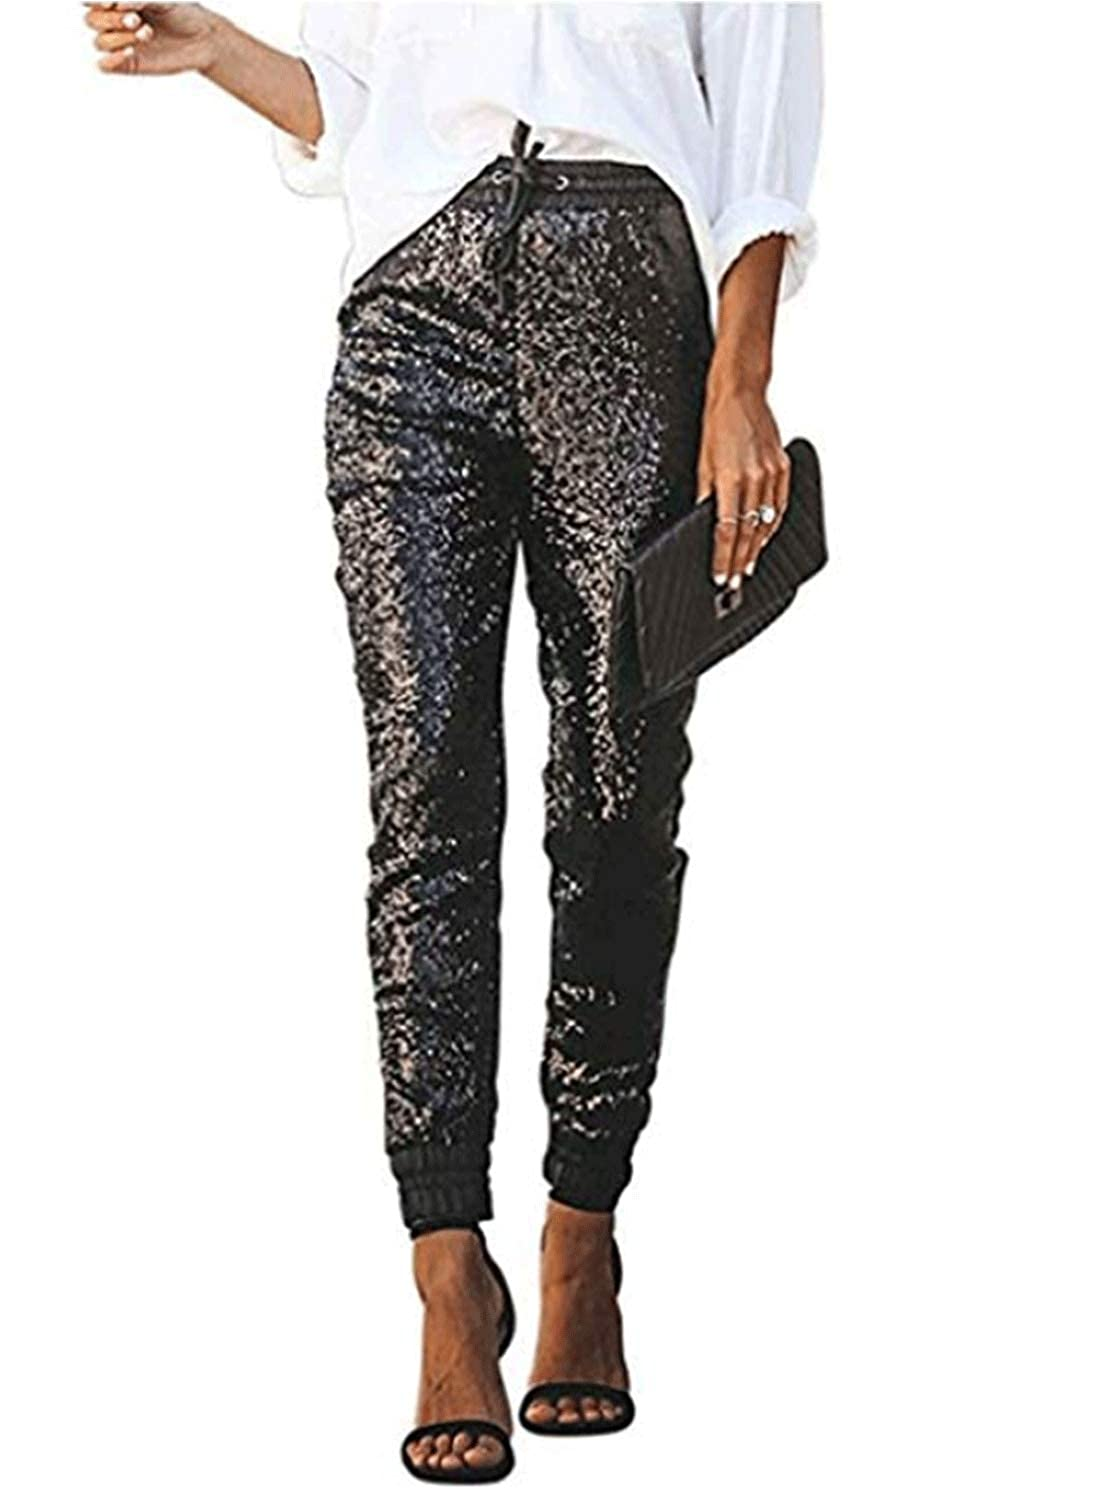 Paitluc Womens Joggers Pants Sequins Fashion Flowy Pants Black Pants Slacks for Women Jogger Pants for Women with Drawstring